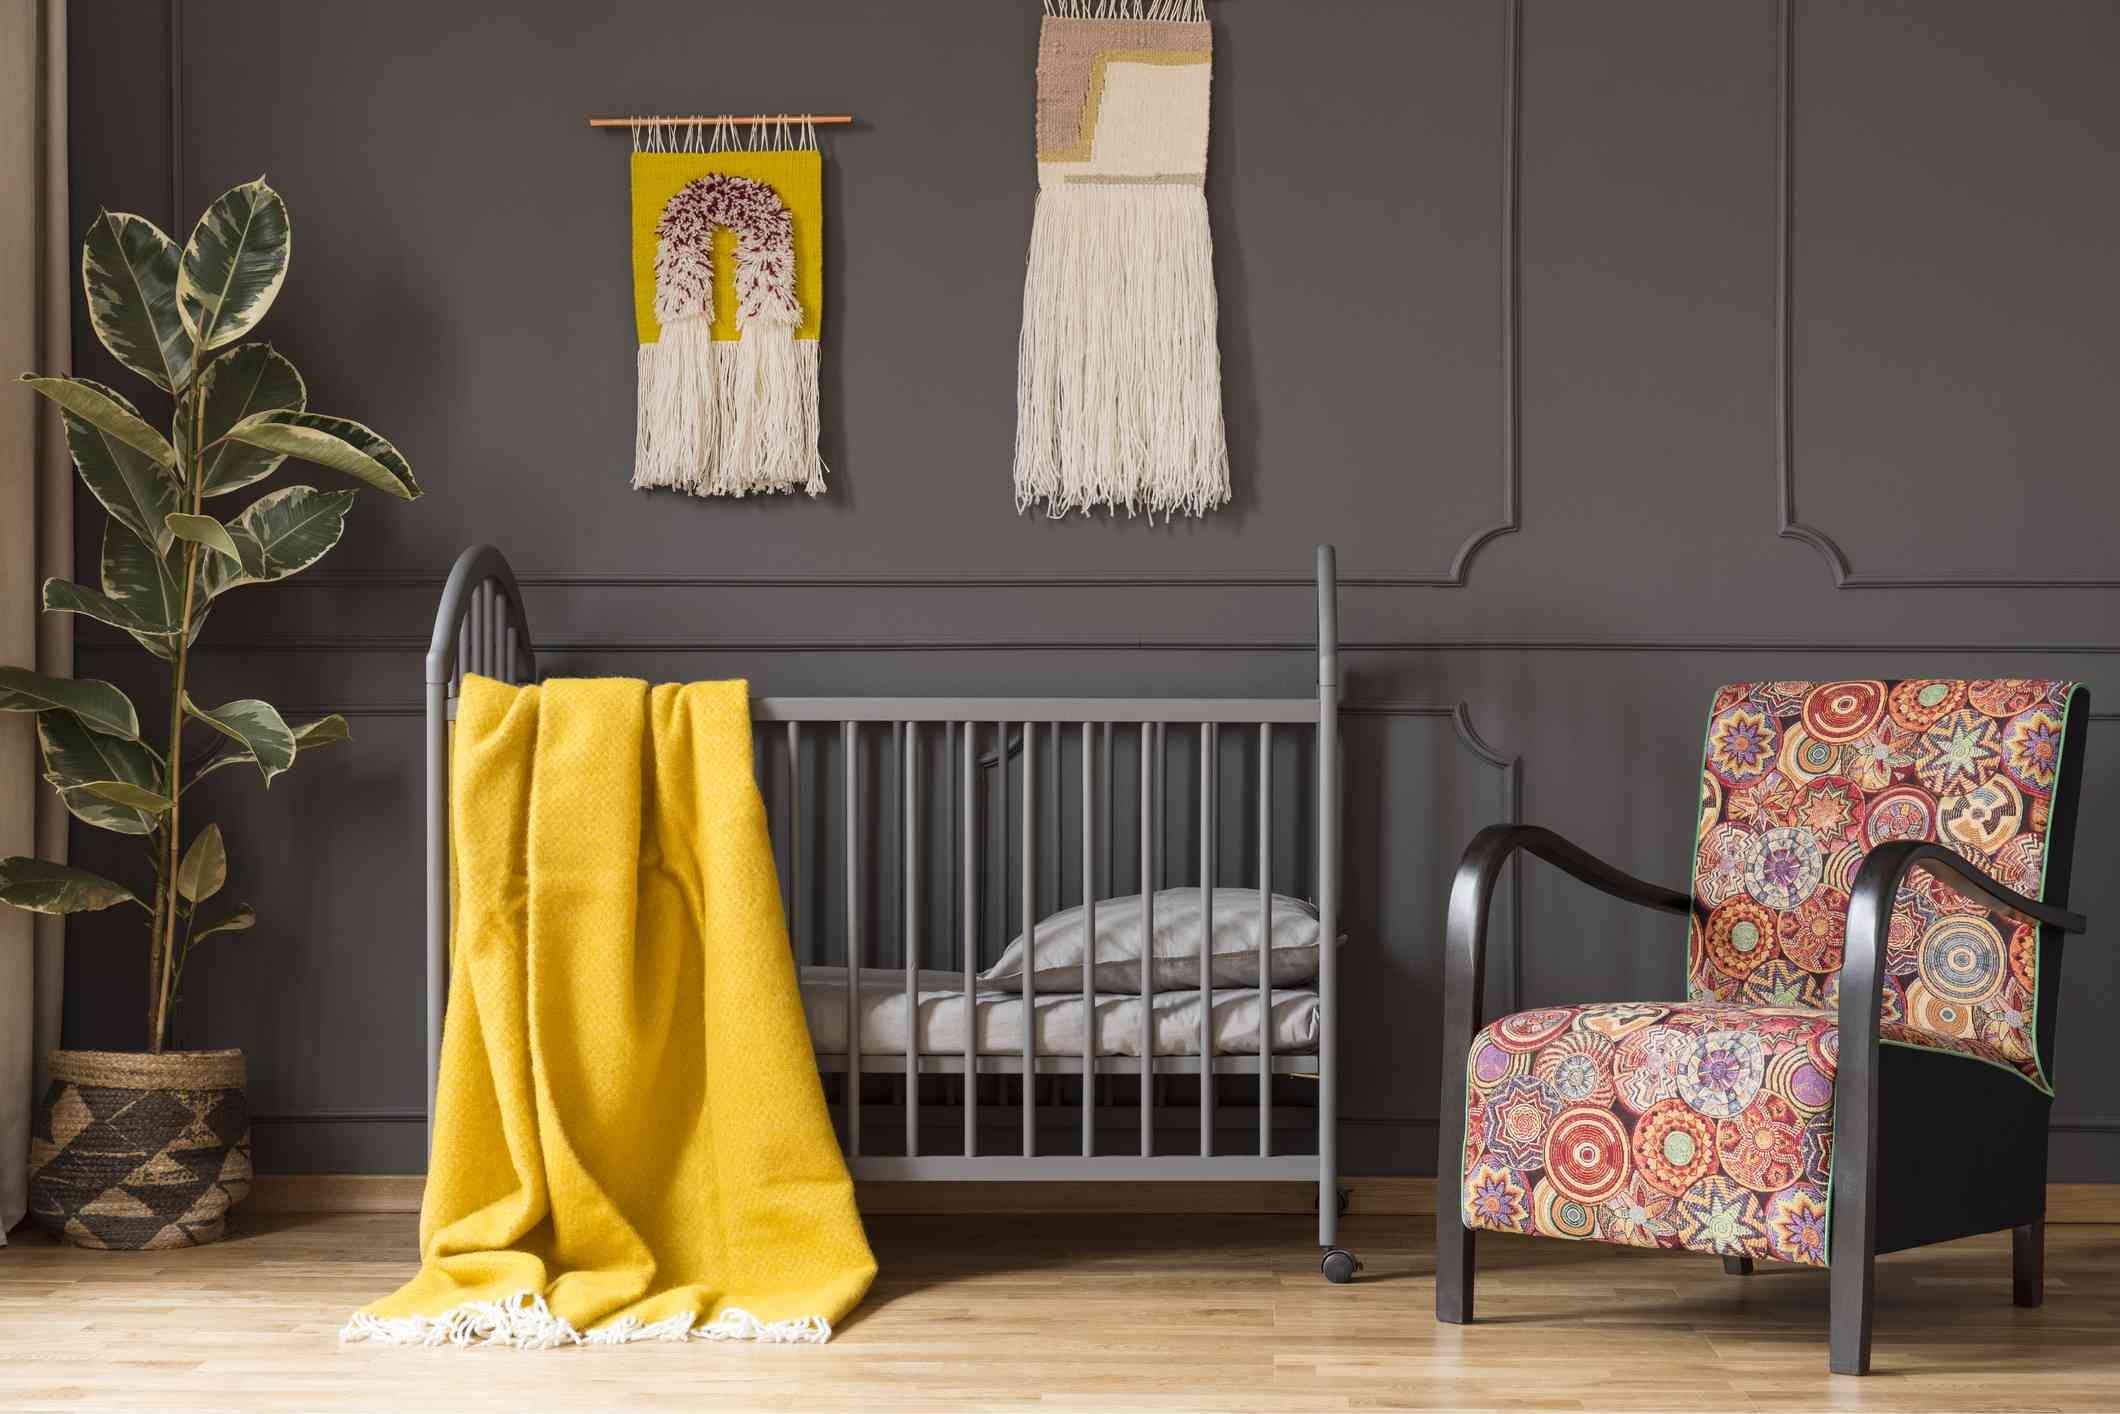 Patterned armchair next to bed with yellow blanket in kid's bedroom interior with ficus. Real photo